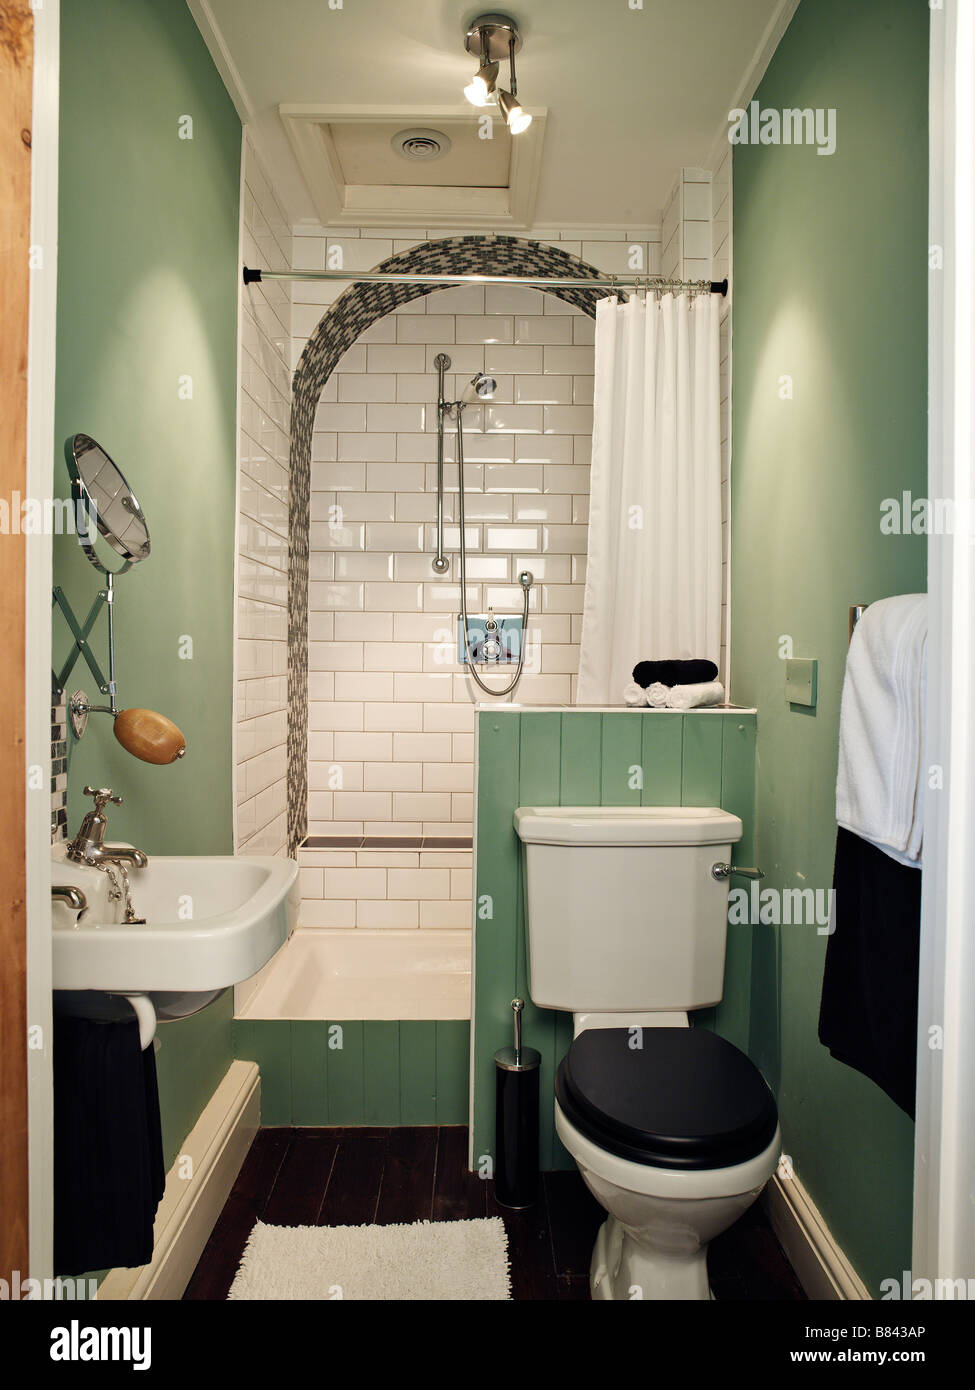 small bathroom with shower toilet and sink Stock Photo: 22218078 - Alamy